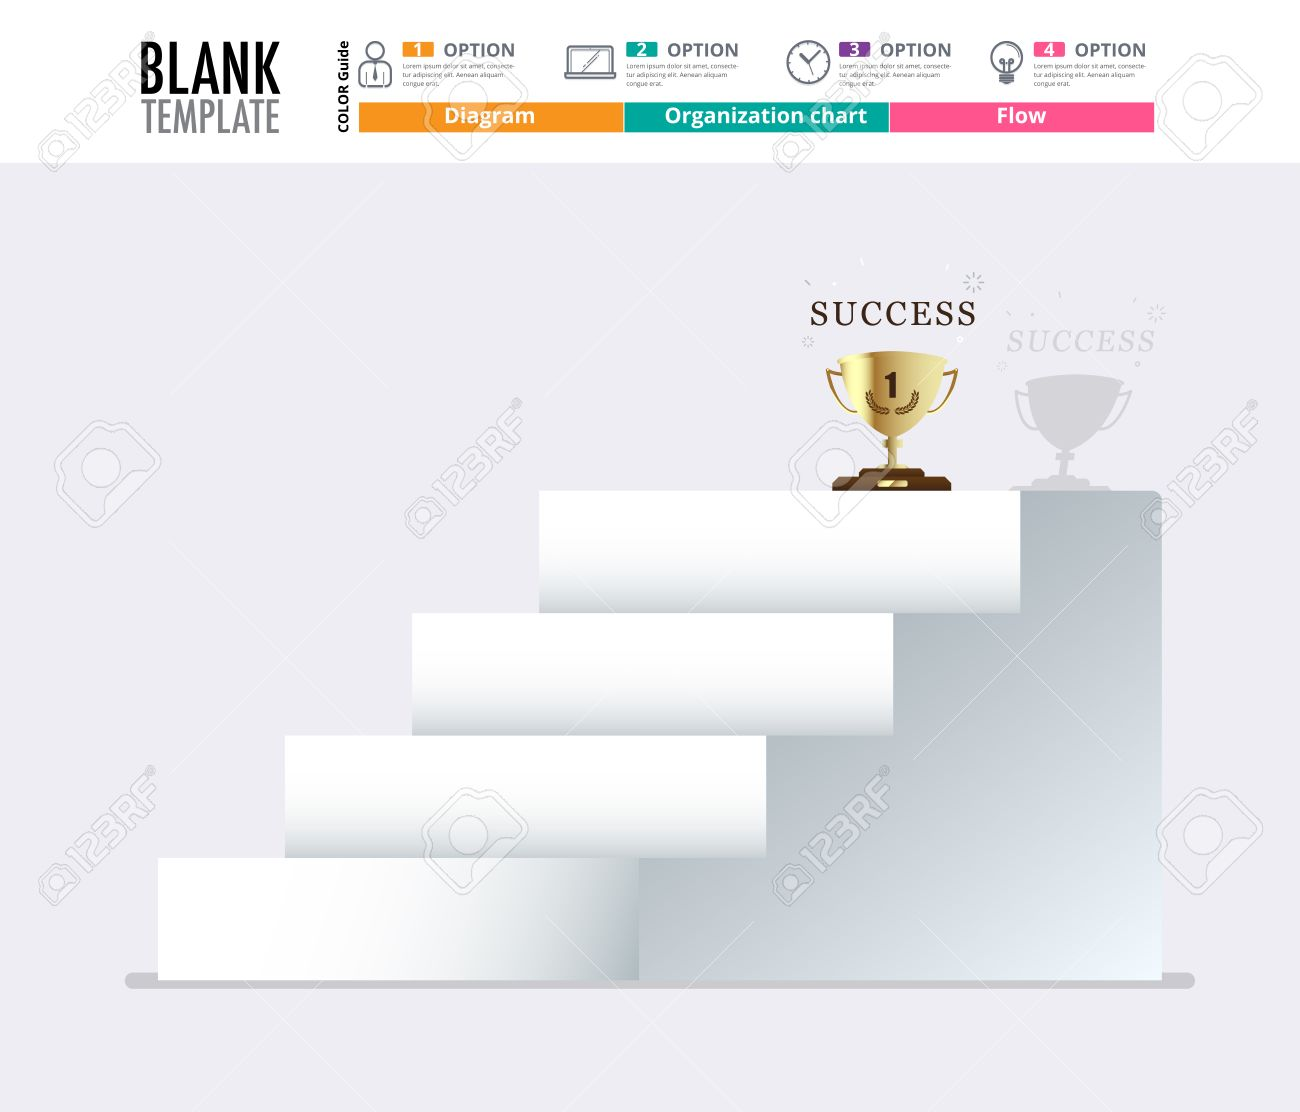 Stair to success infographic design template for replace text,